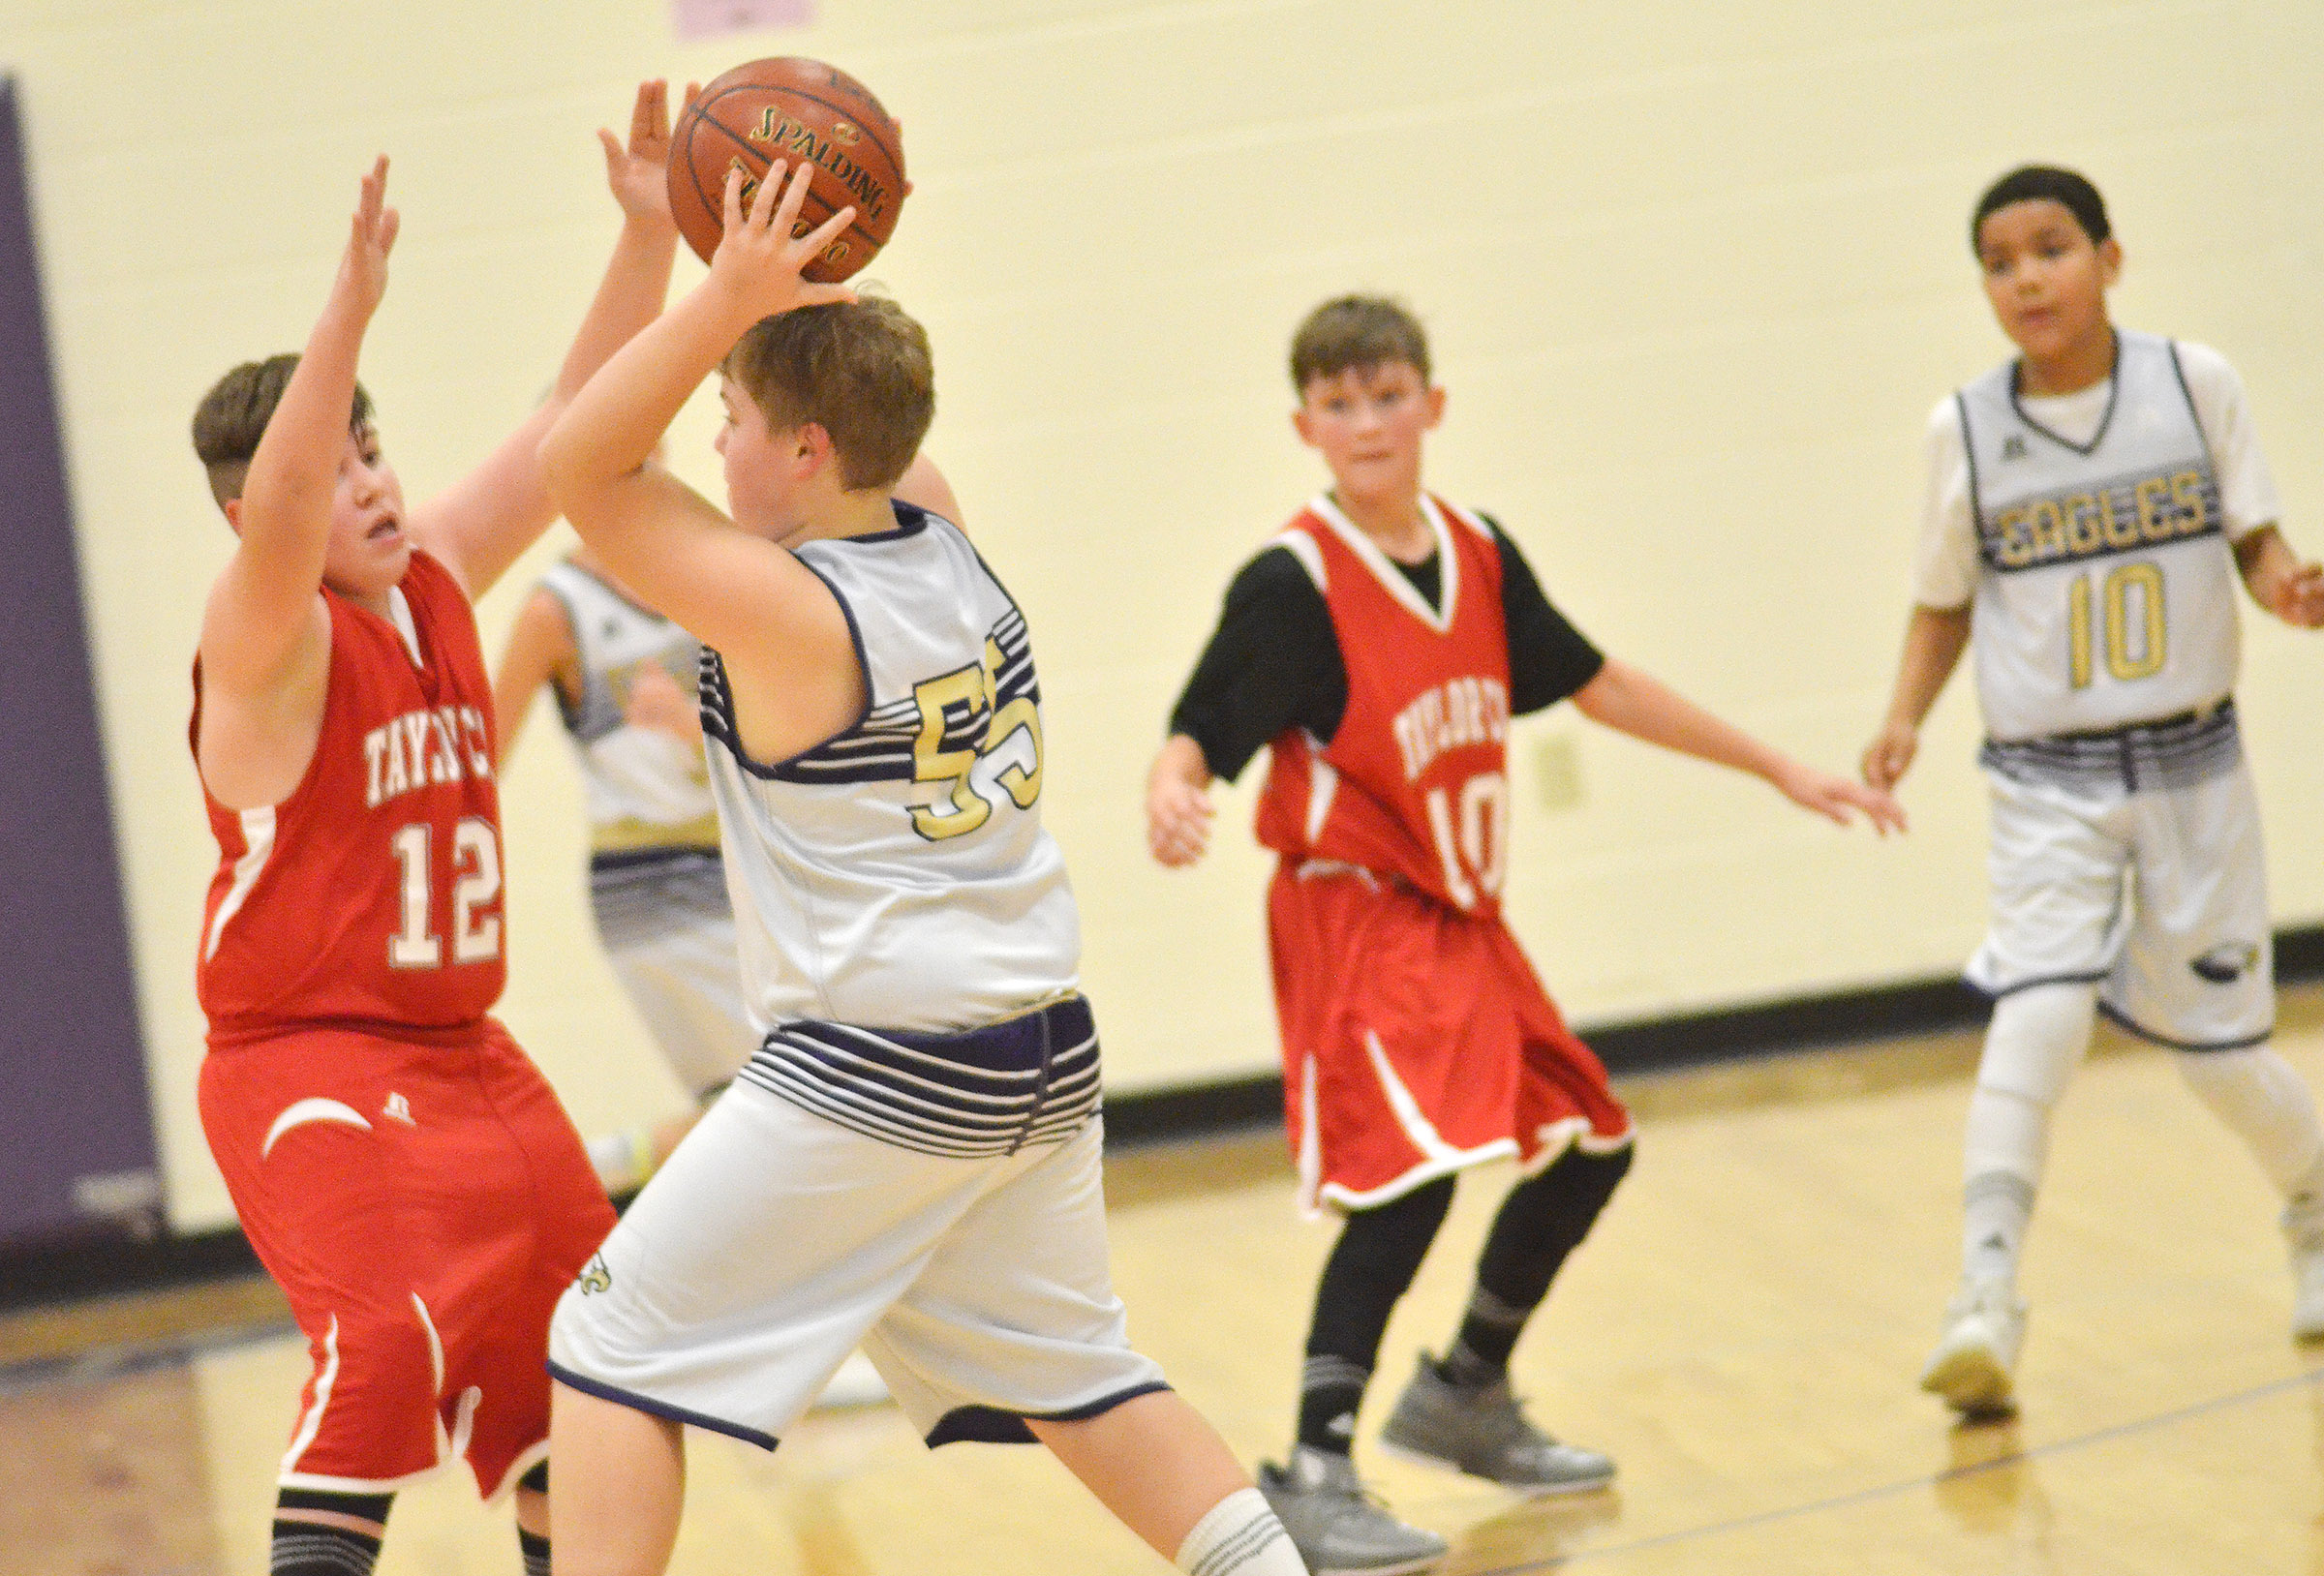 CMS sixth-grader Ryan Grubbs looks to pass.